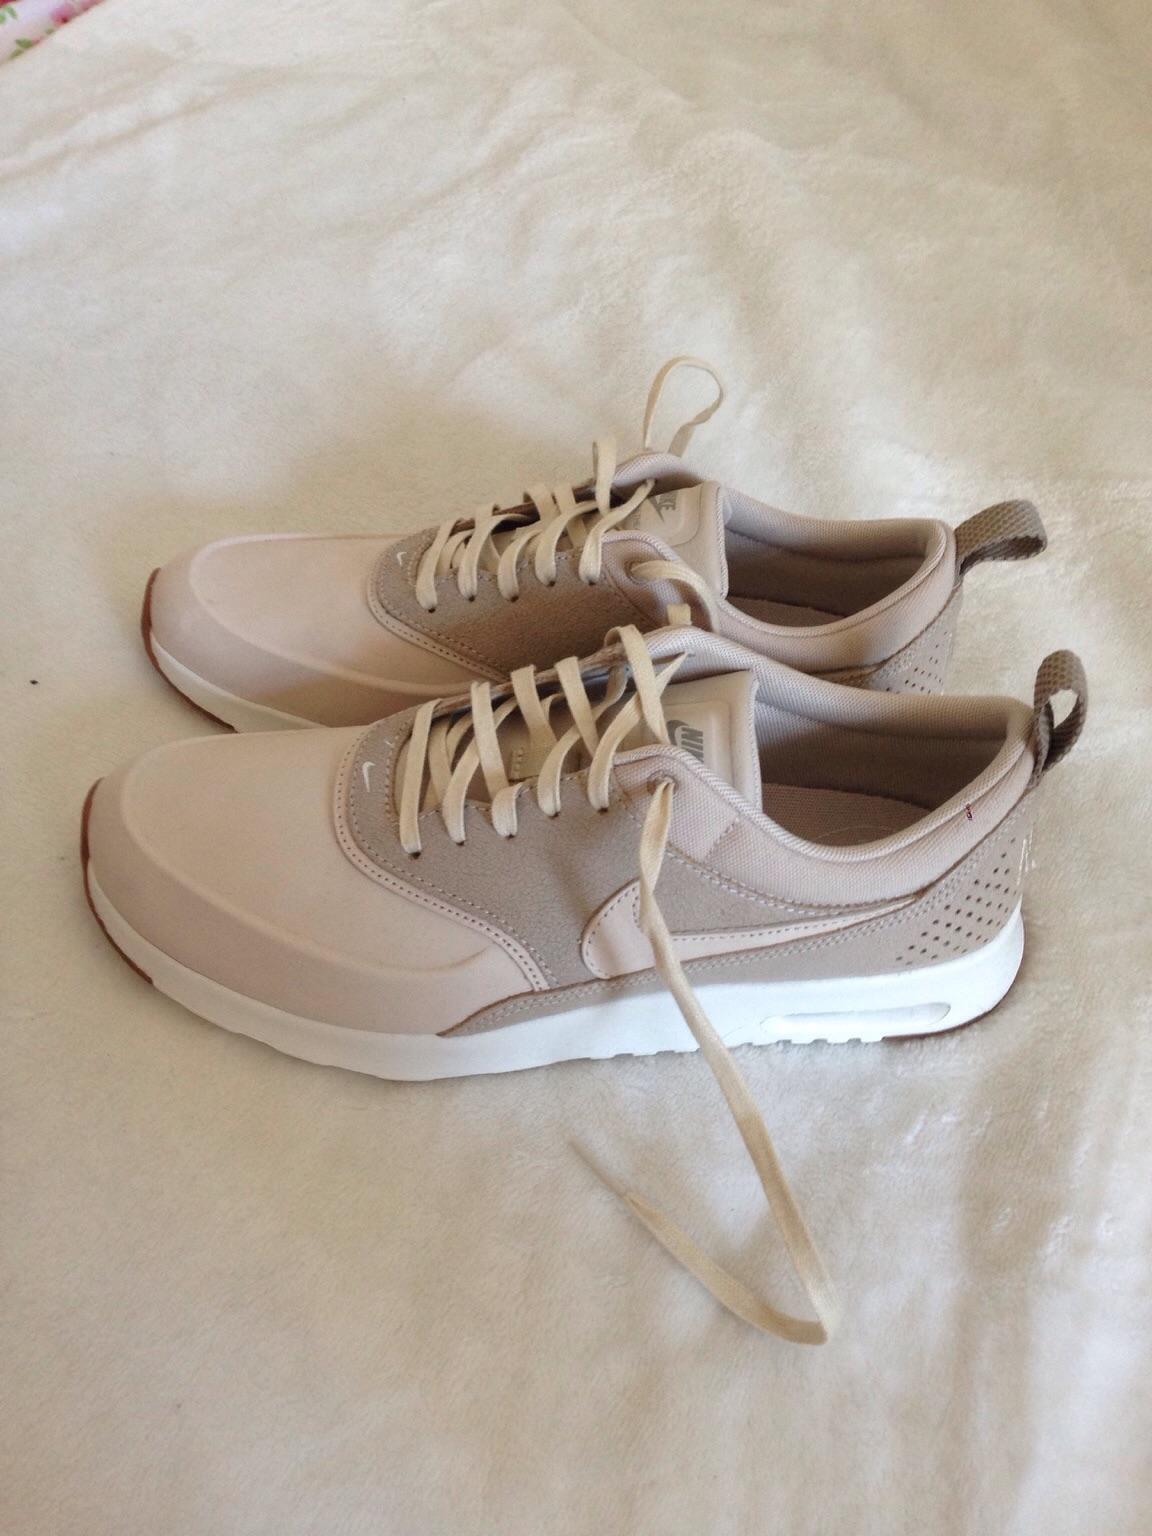 Nike Air Max Thea beige nude in 06366 Köthen (Anhalt) for